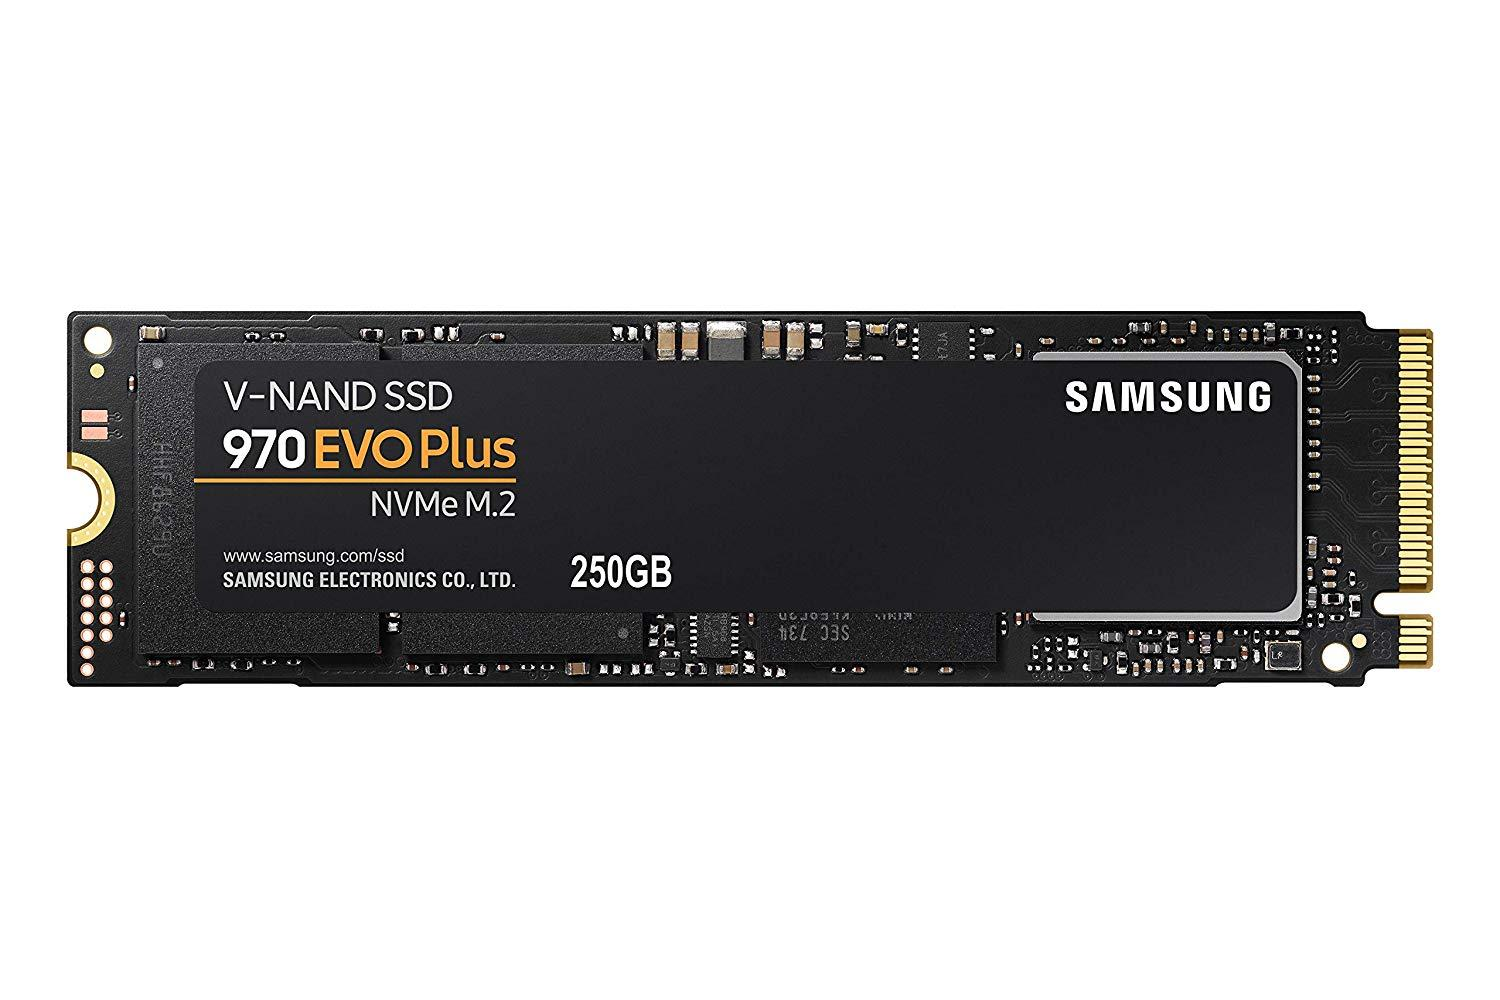 Solid State Drive (SSD) SAMSUNG 970 EVO Plus, 250GB, M.2 Type 2280, MZ-V7S250BW